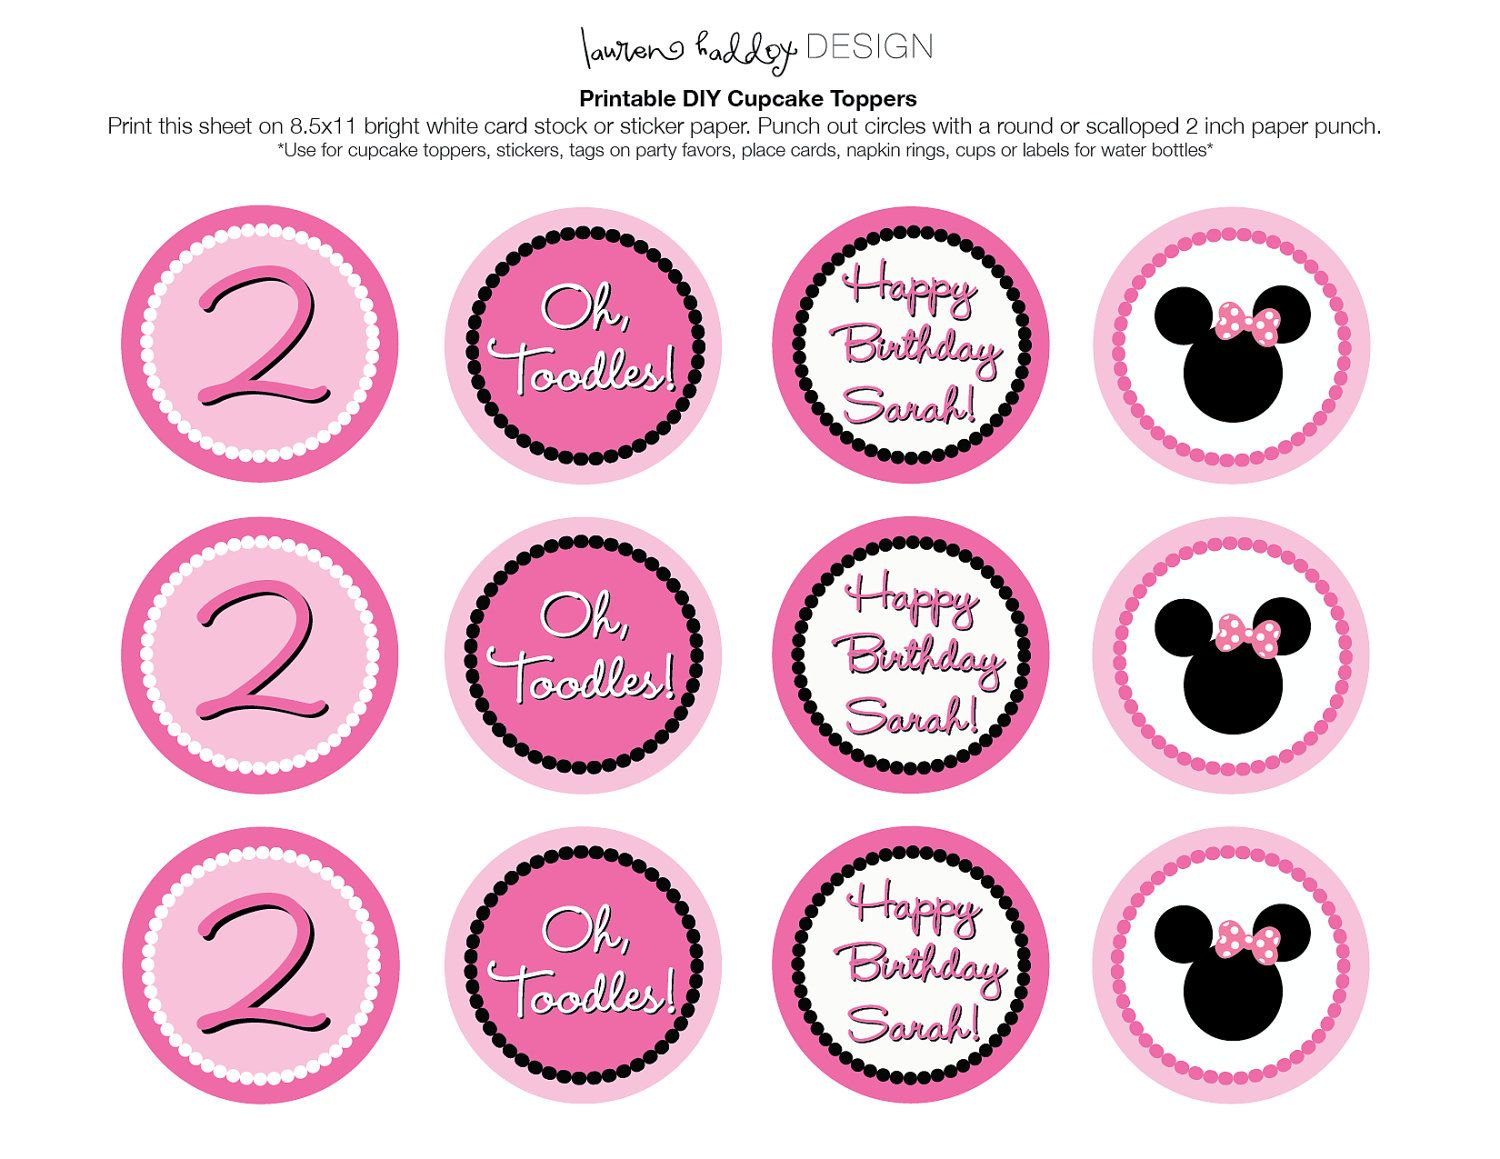 Diy Printable Minnie Mouse Cupcake Toppers By Laurenhaddoxdesigns 5 00 Minnie Mouse Cupcake Toppers Minnie Mouse Cupcakes Minnie Mouse Party